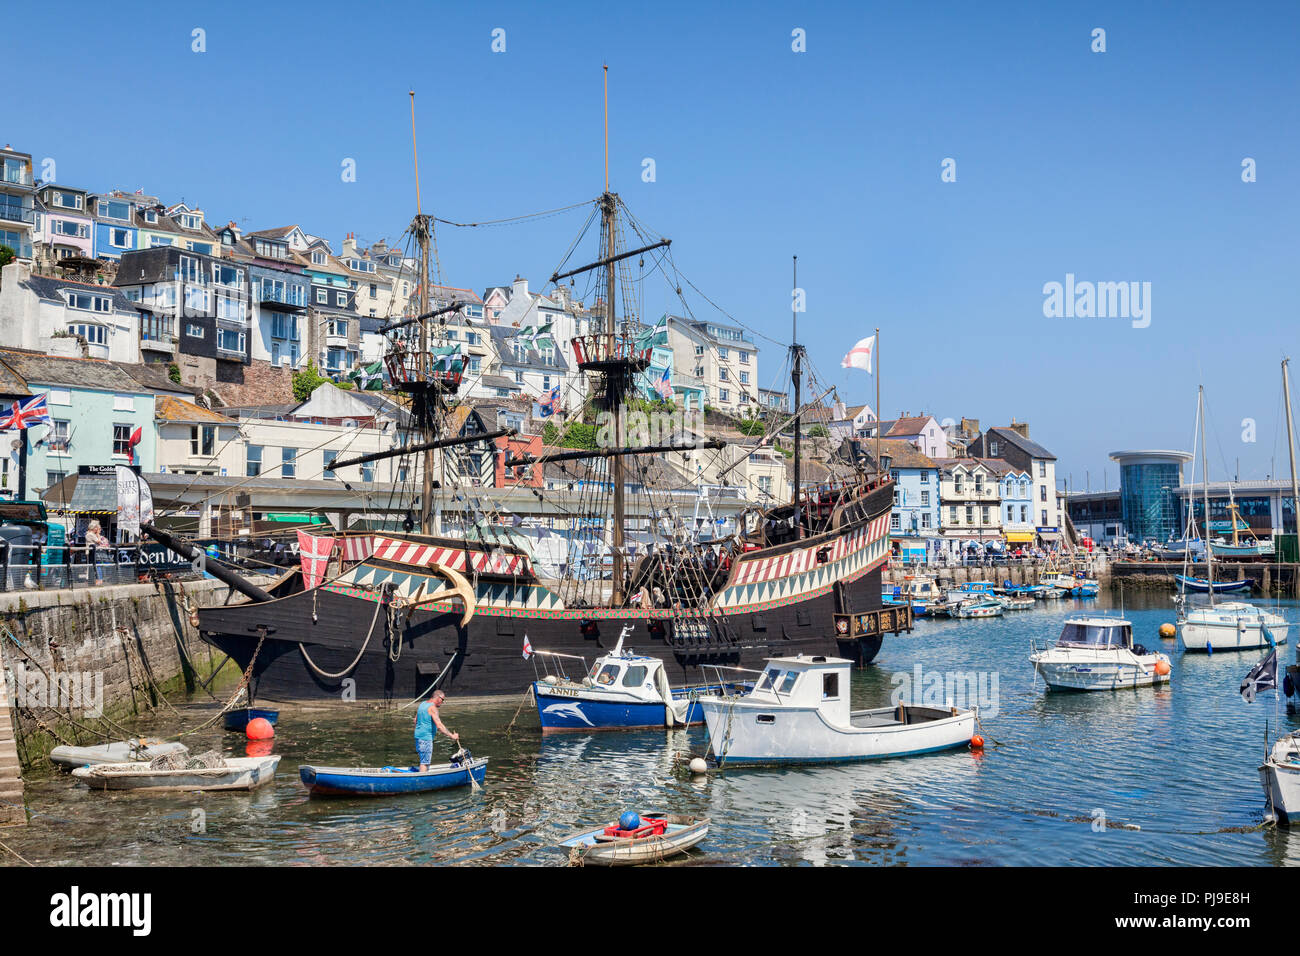 23 May 2018: Brixham, Devon, UK - The Golden Hind replica, an attraction in Brixham Harbour. - Stock Image